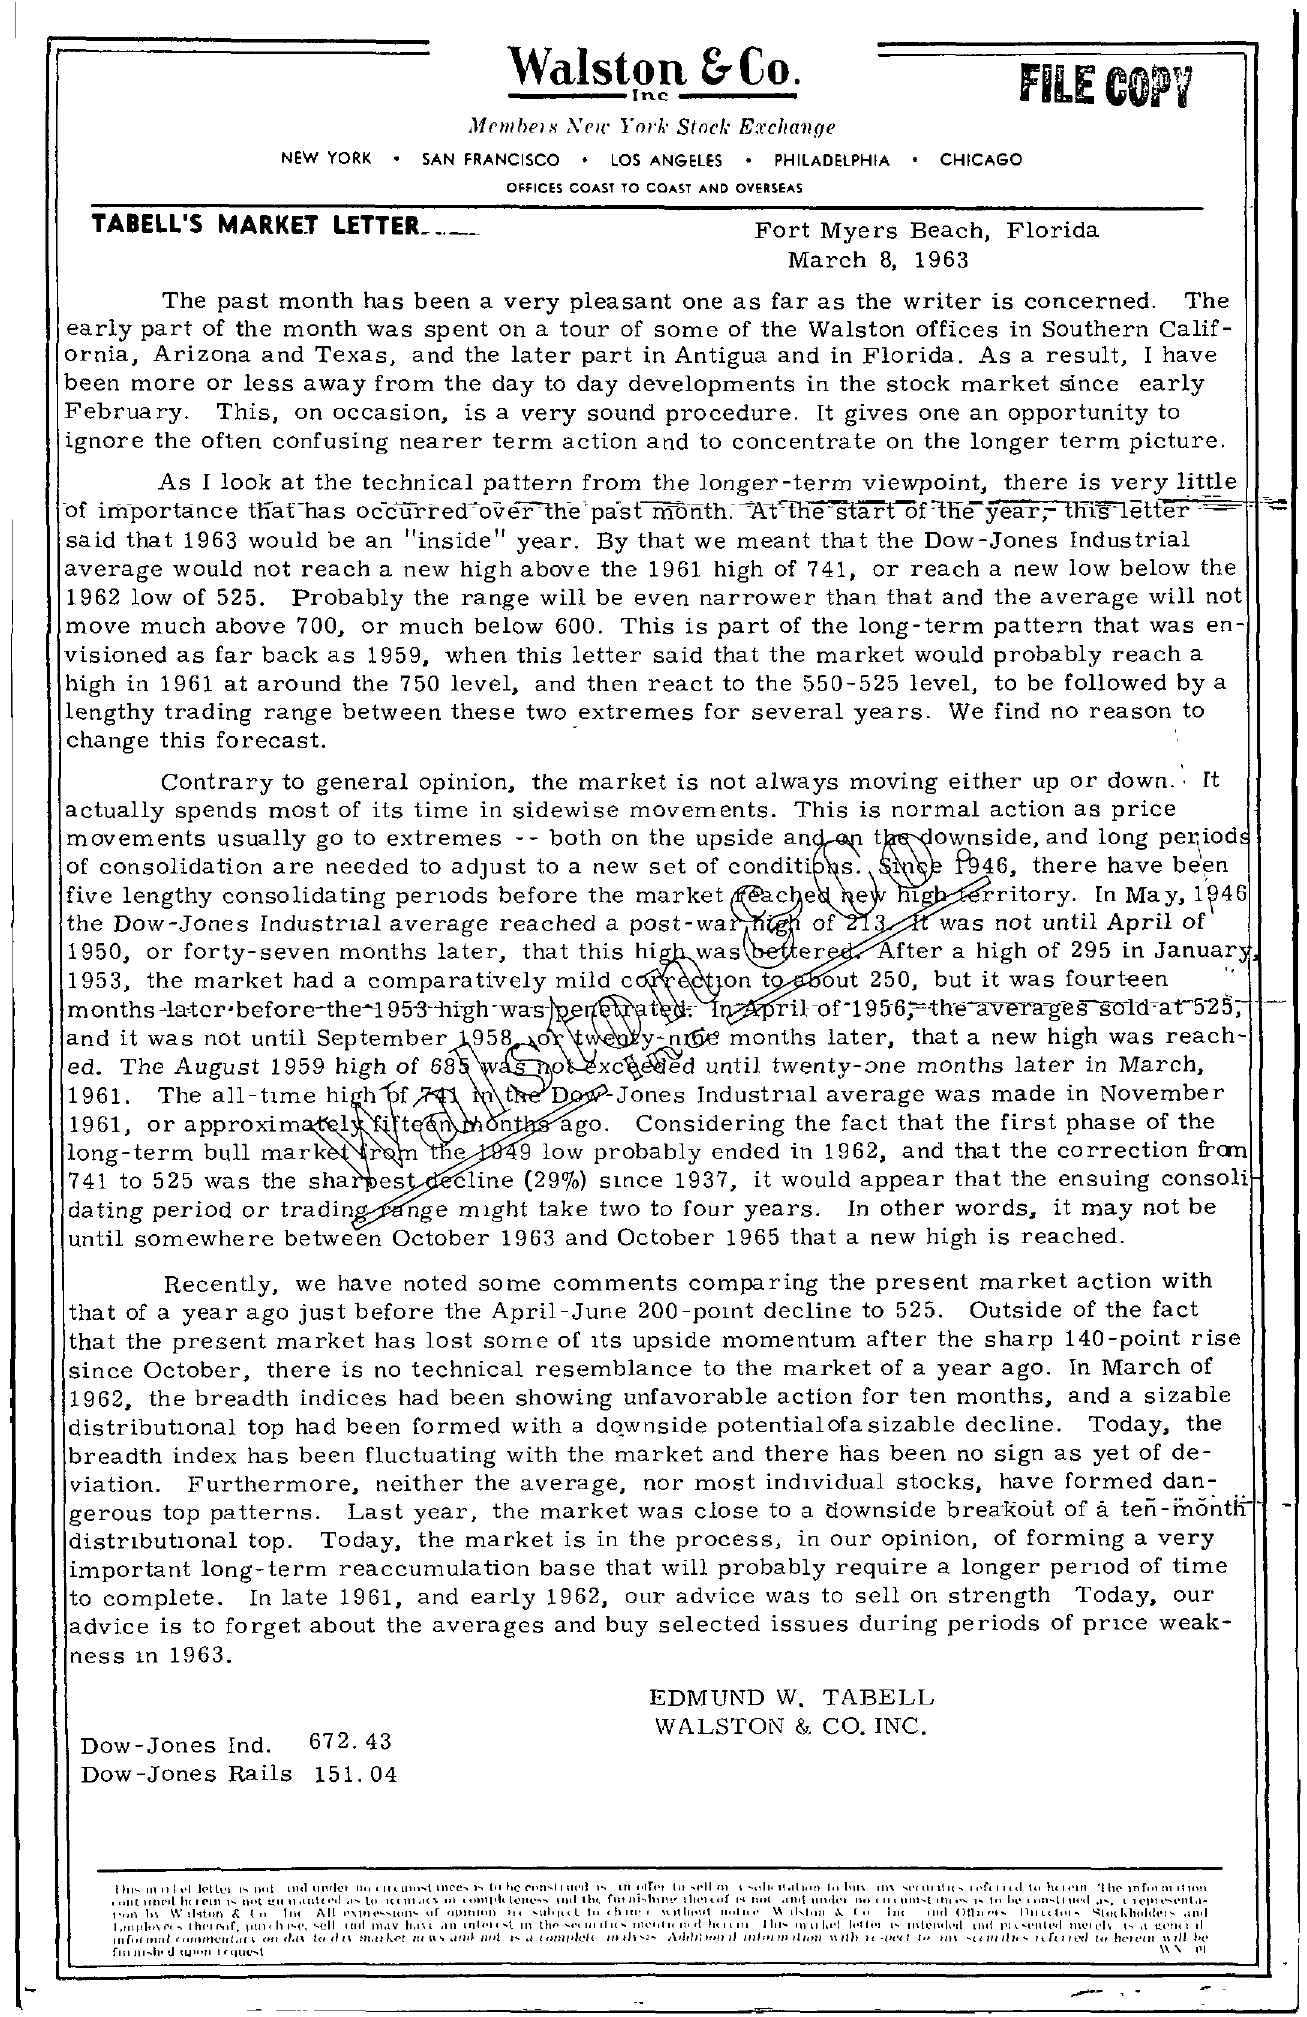 Tabell's Market Letter - March 08, 1963 page 1